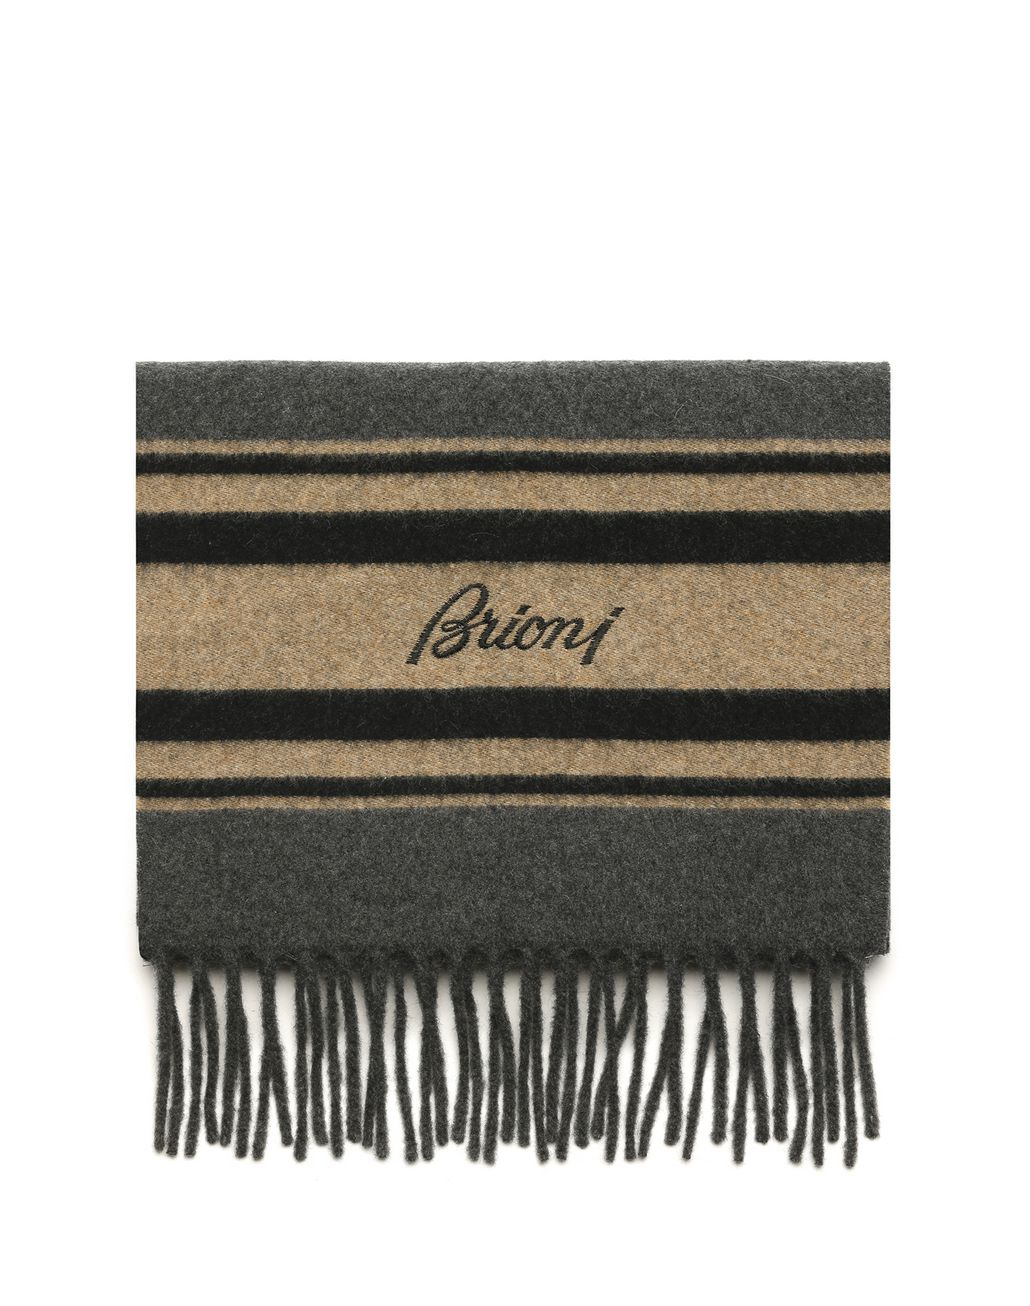 BRIONI Grey Scarf with Regimental Stripe Foulards & Scarves Man f